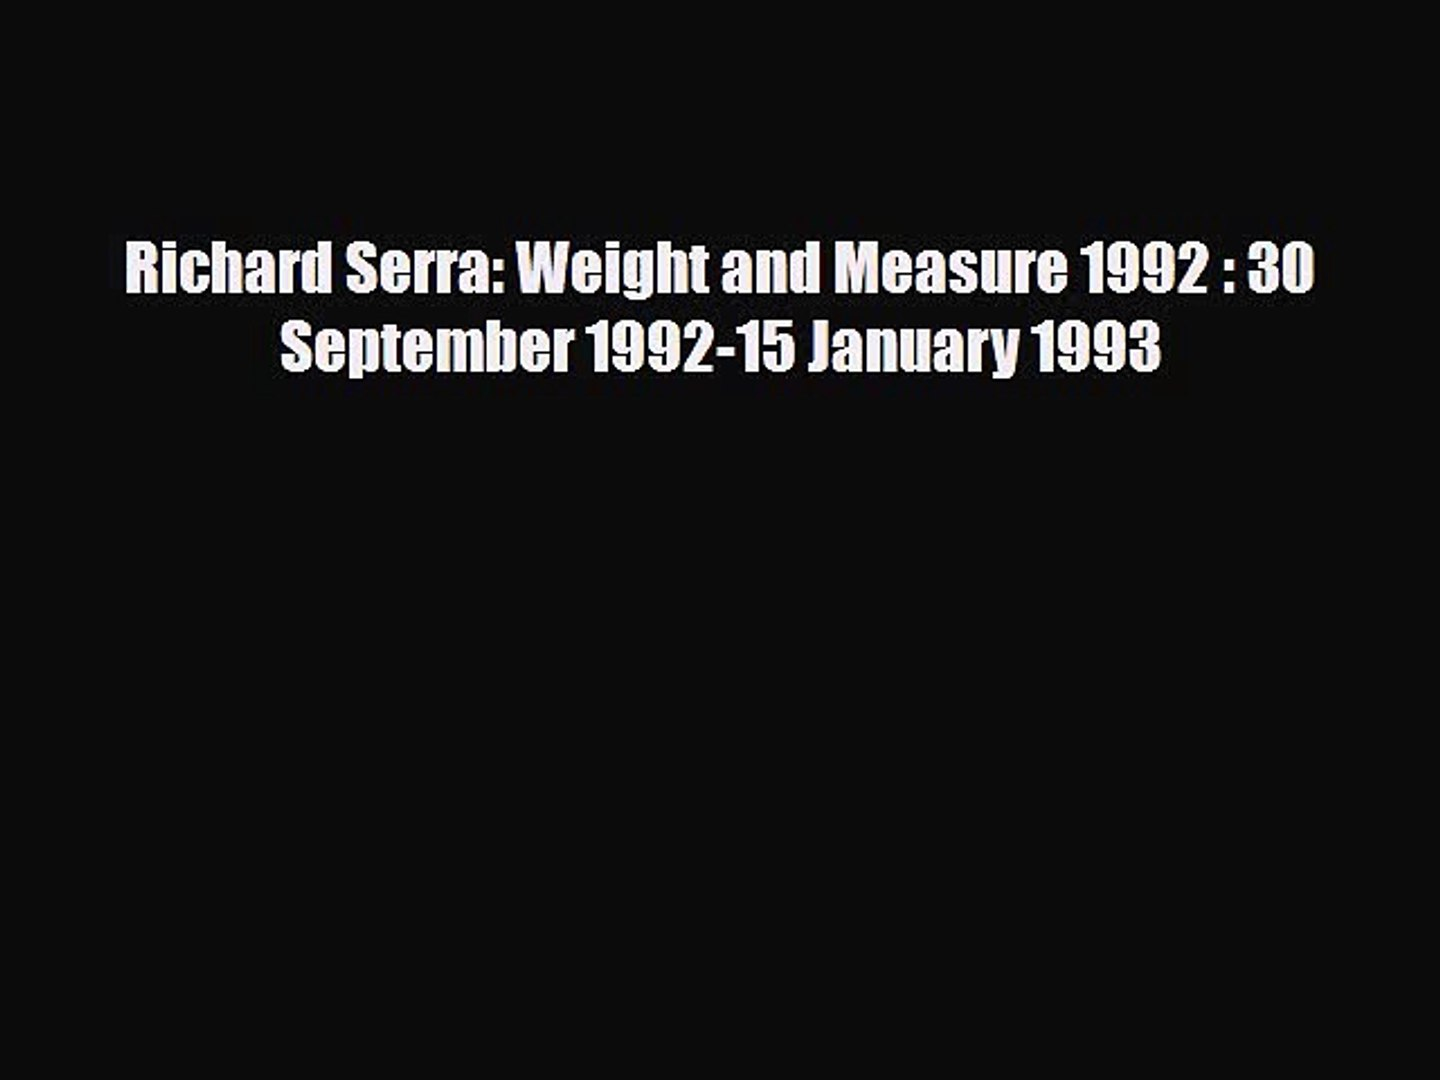 Read Richard Serra: Weight and Measure 1992 : 30 September 1992-15 January 1993 PDF Free